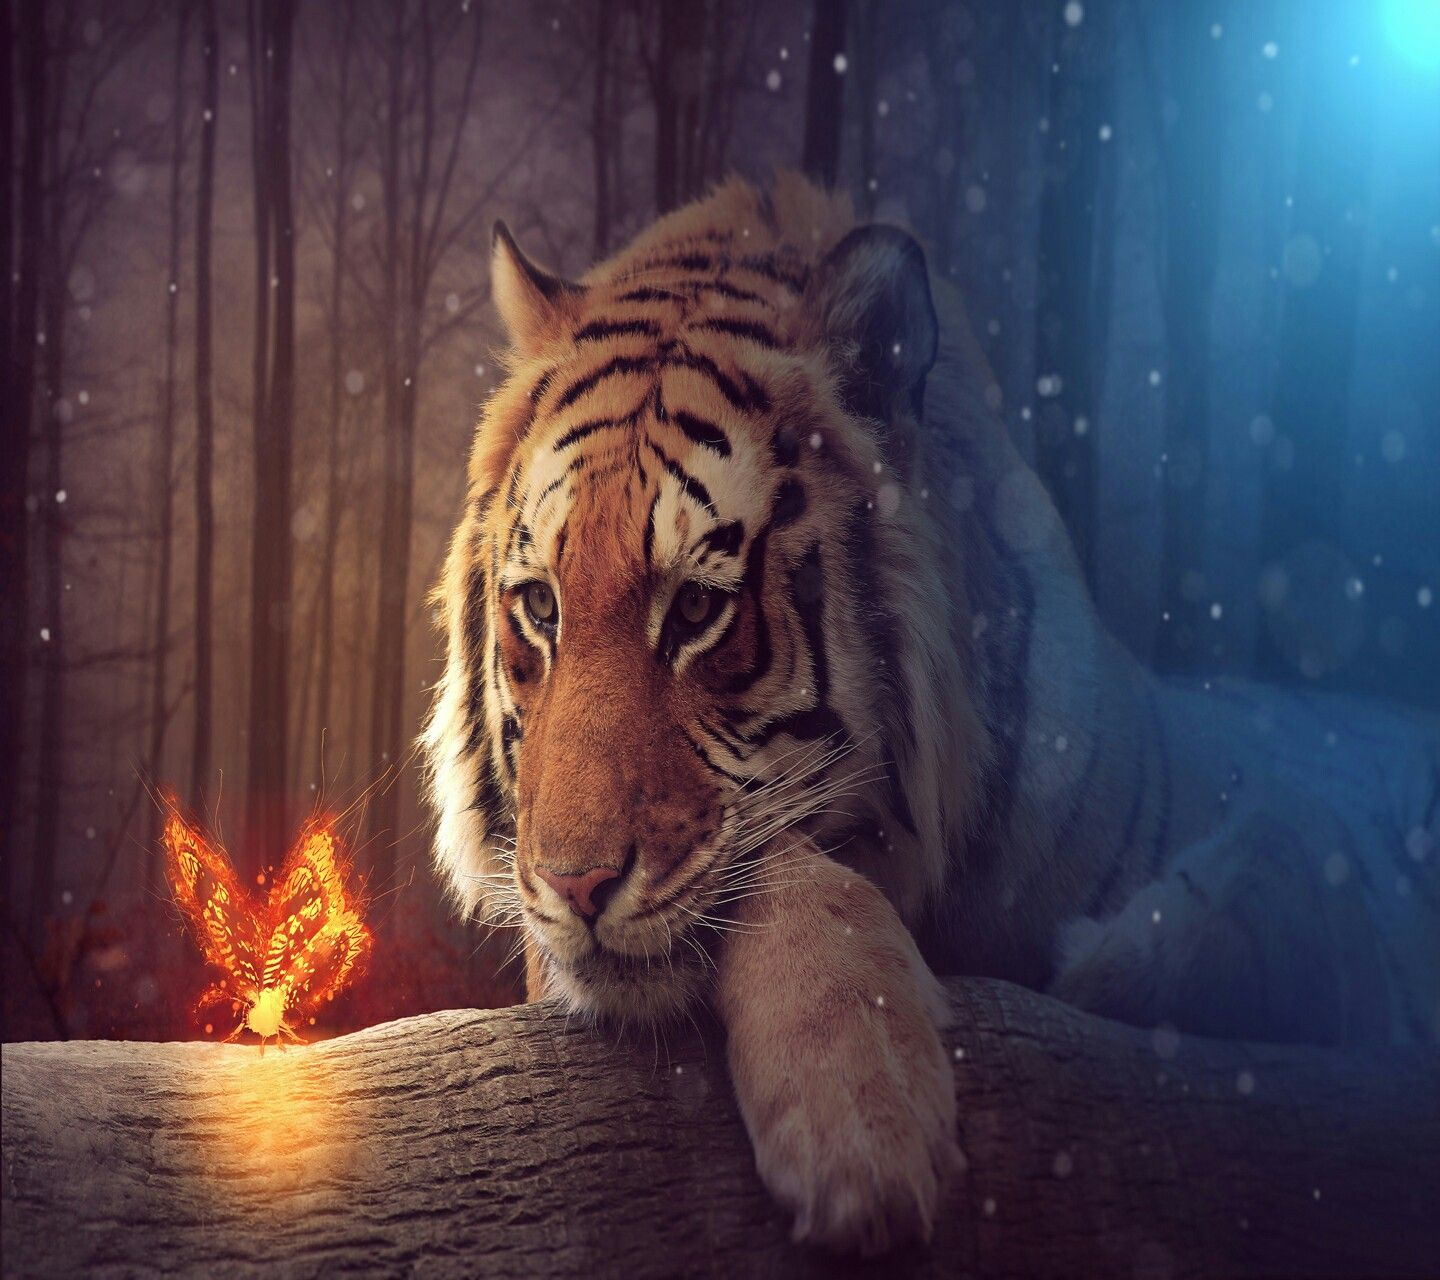 Pin by savannah martinez 01 on tiger art pinterest tiger art big tiger tiger art tiger wallpaper mobile wallpaper wallpapers tigers group digital art free altavistaventures Choice Image